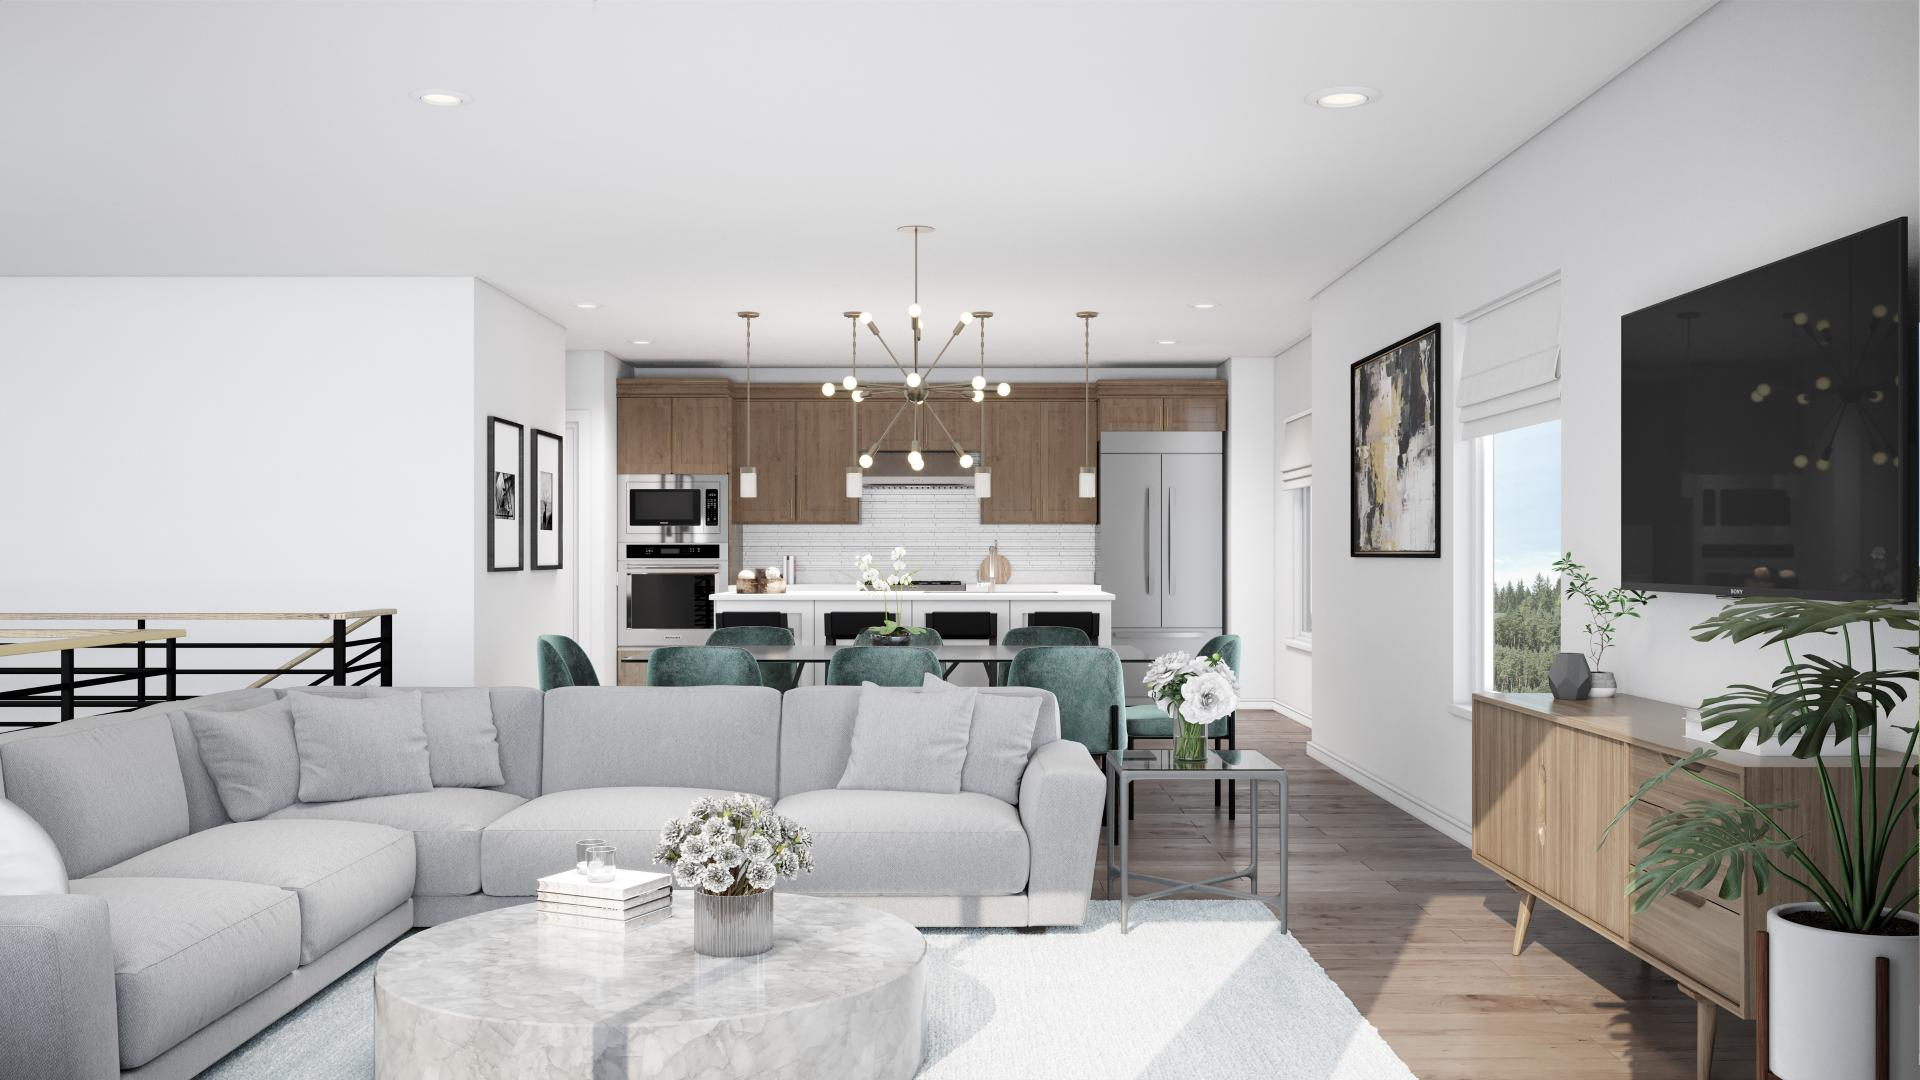 Open concept home designs with plenty of room for entertaining